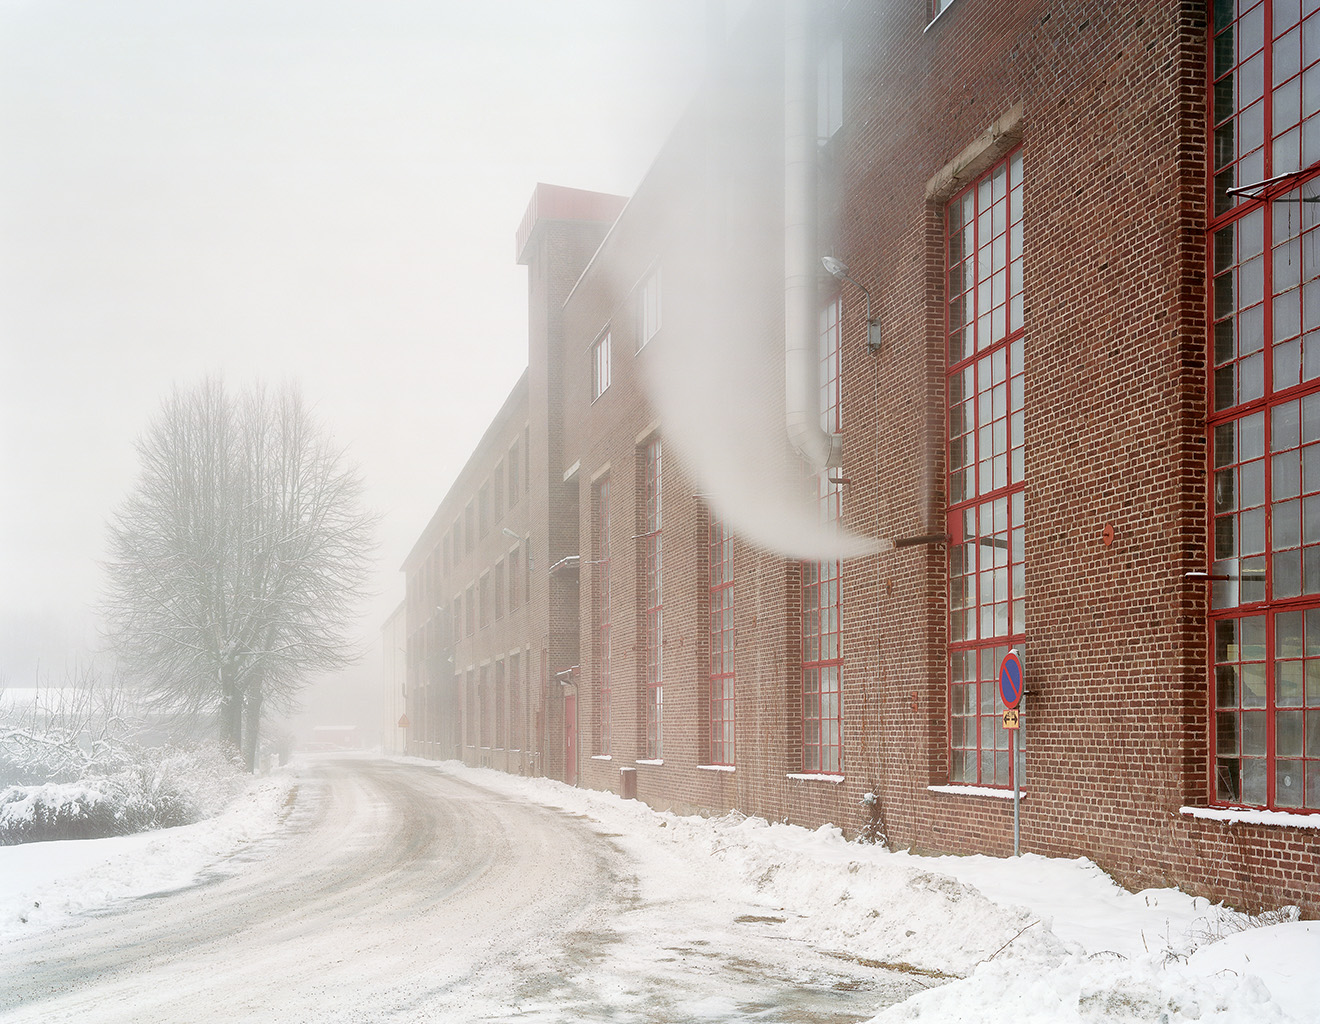 Factory building, Rydboholm, 7 January 2004